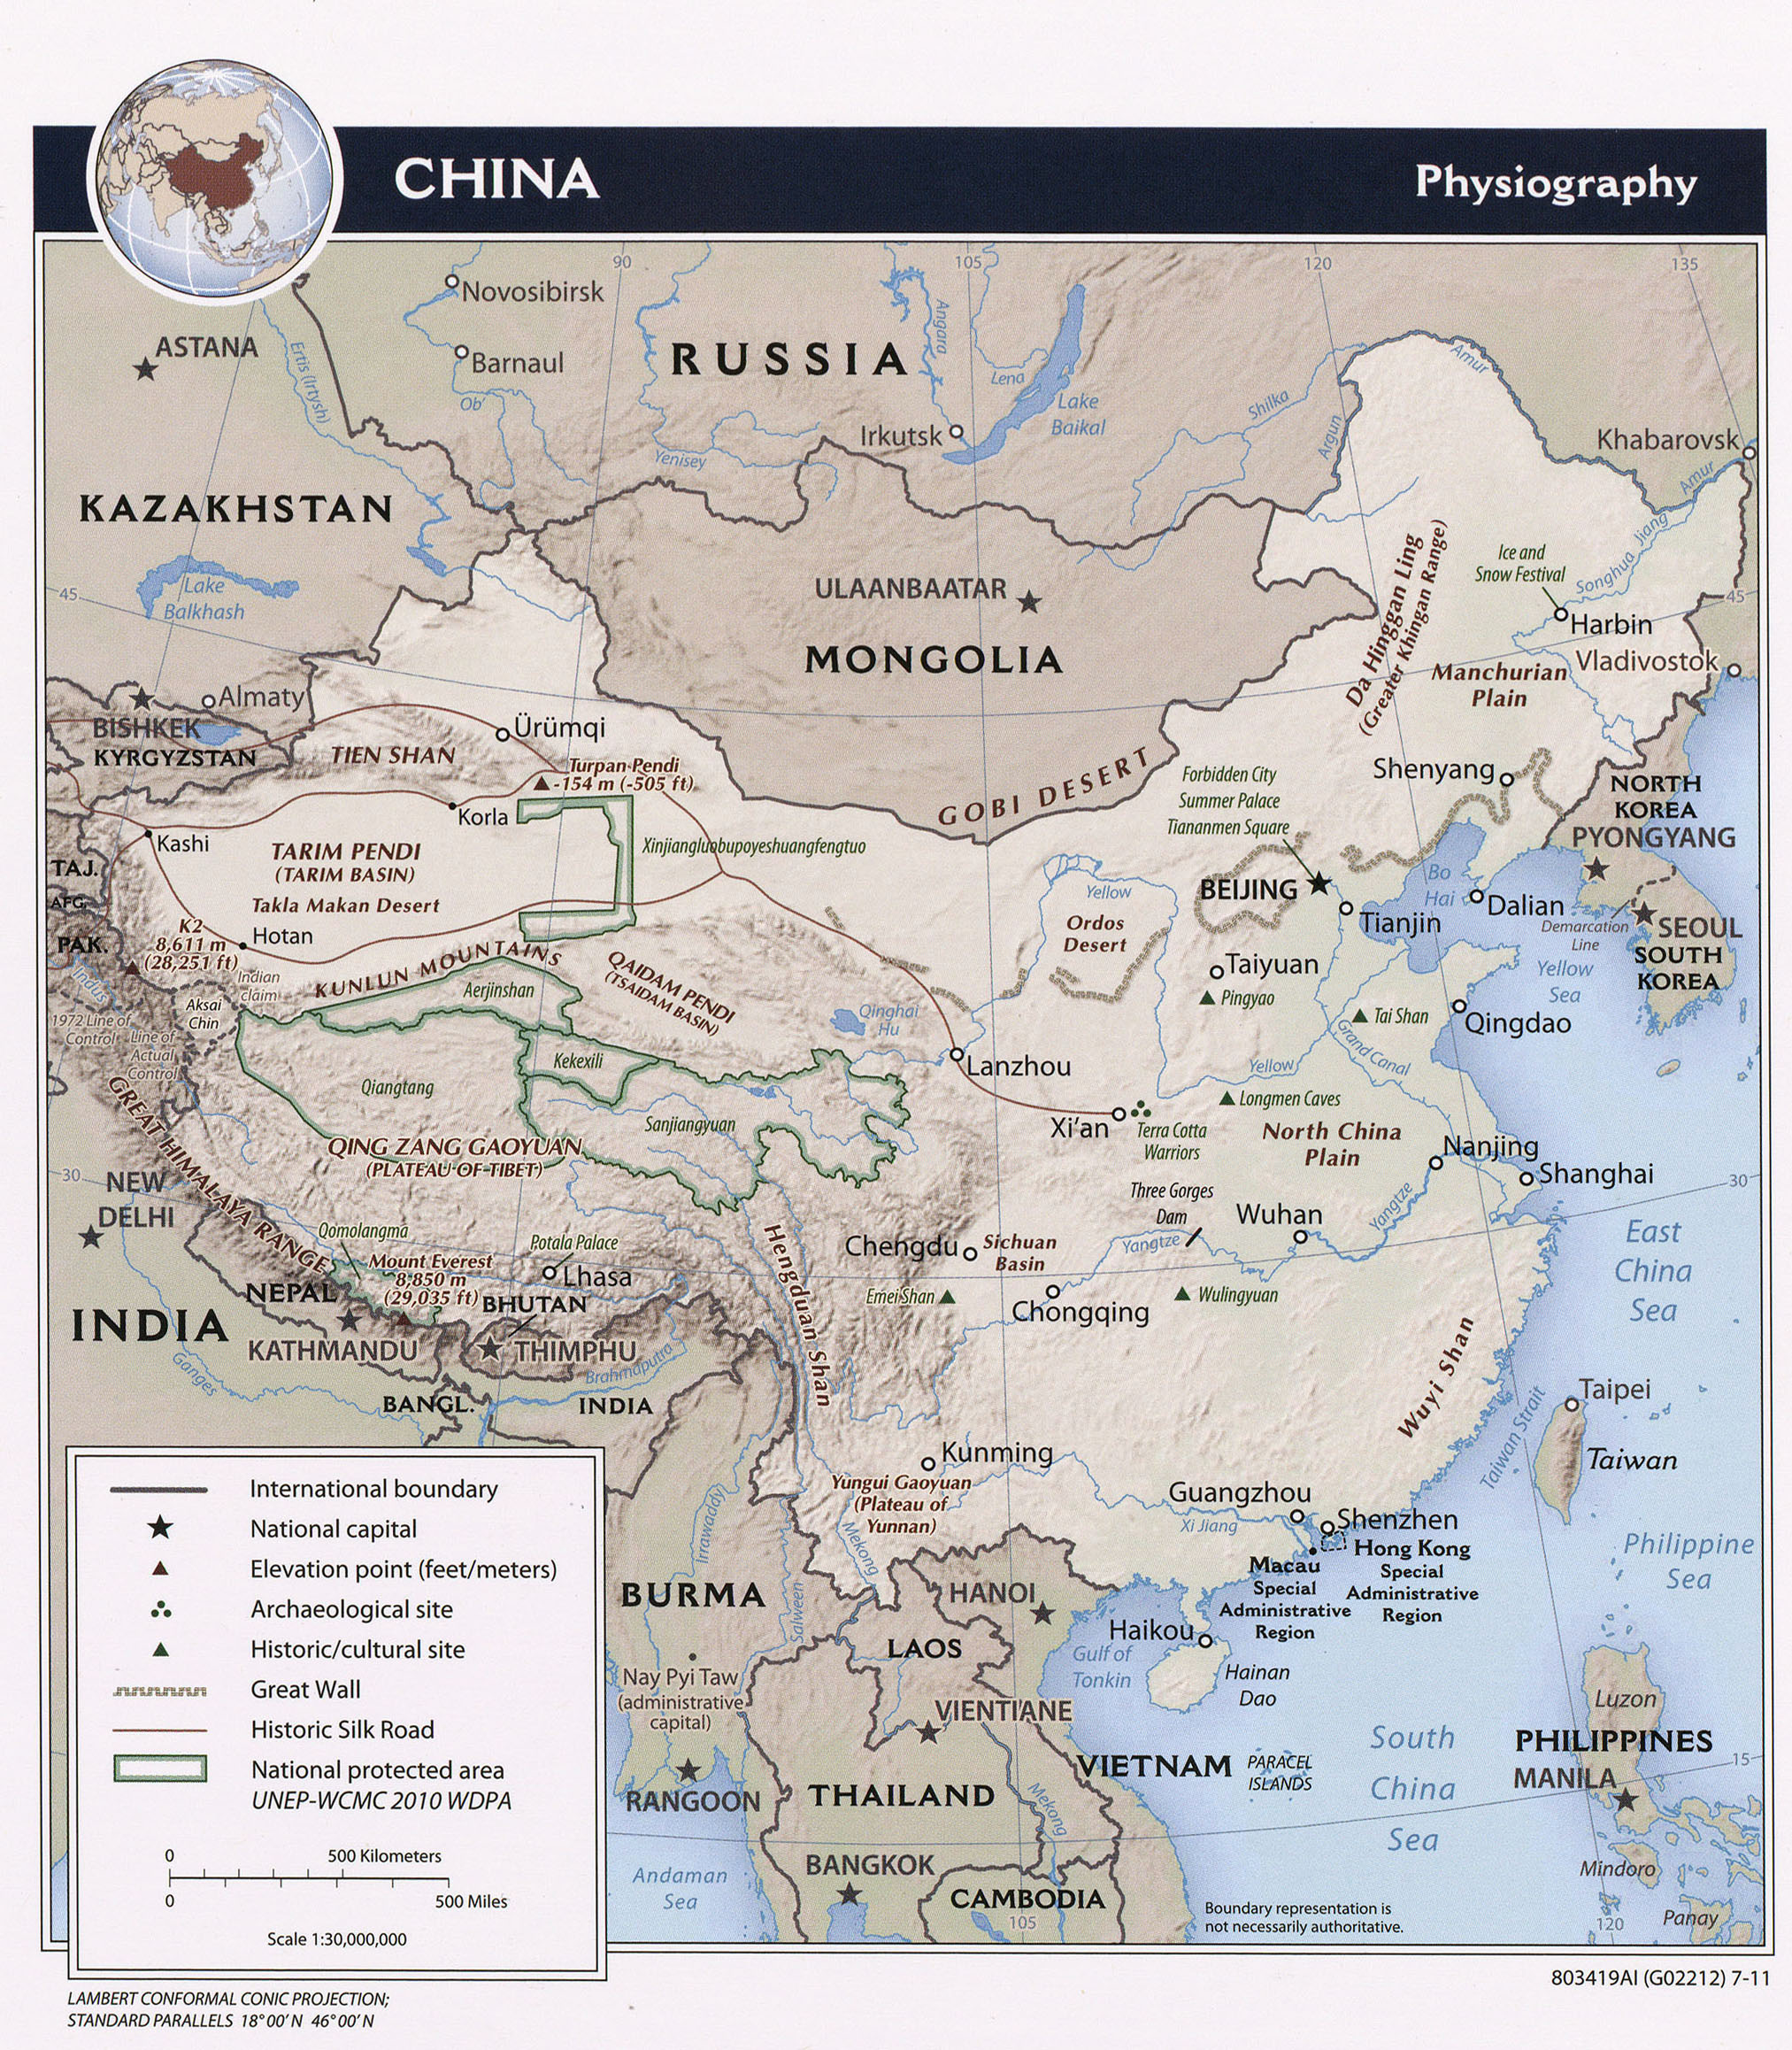 Physiographic Map Of China Large detailed physiography map of China. China large detailed